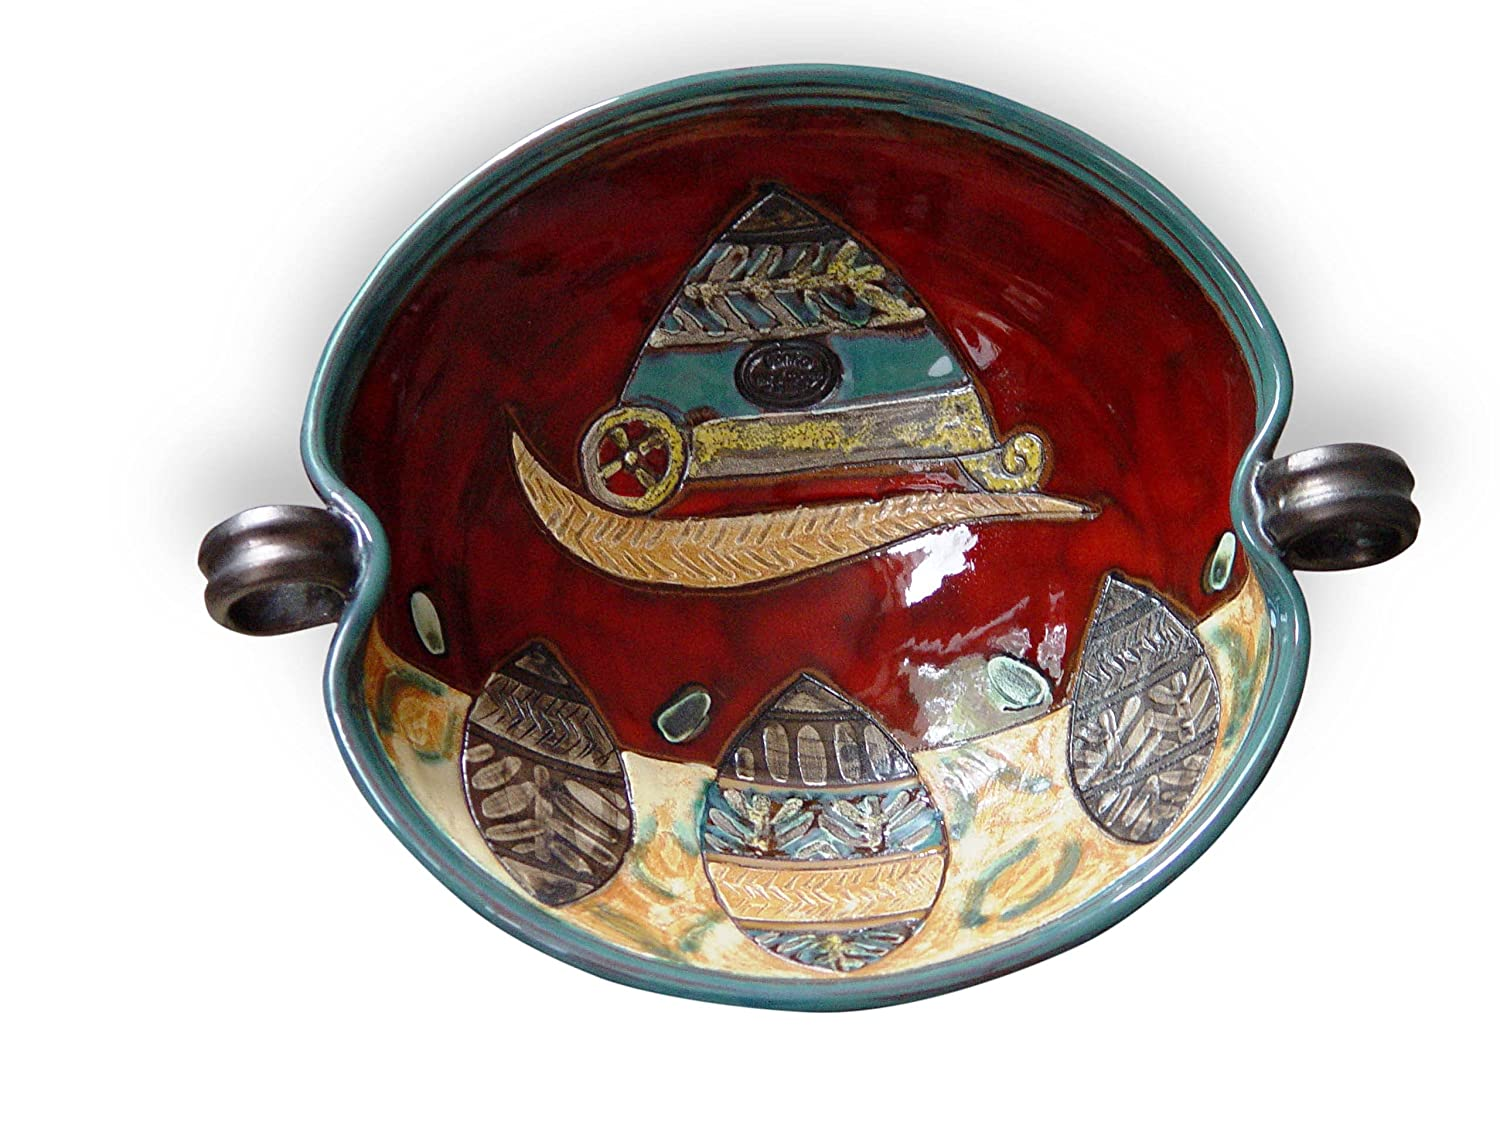 Unique Pottery Bowl - Selling and selling Hand Ceramic Gorgeous Painted Fruit Dish